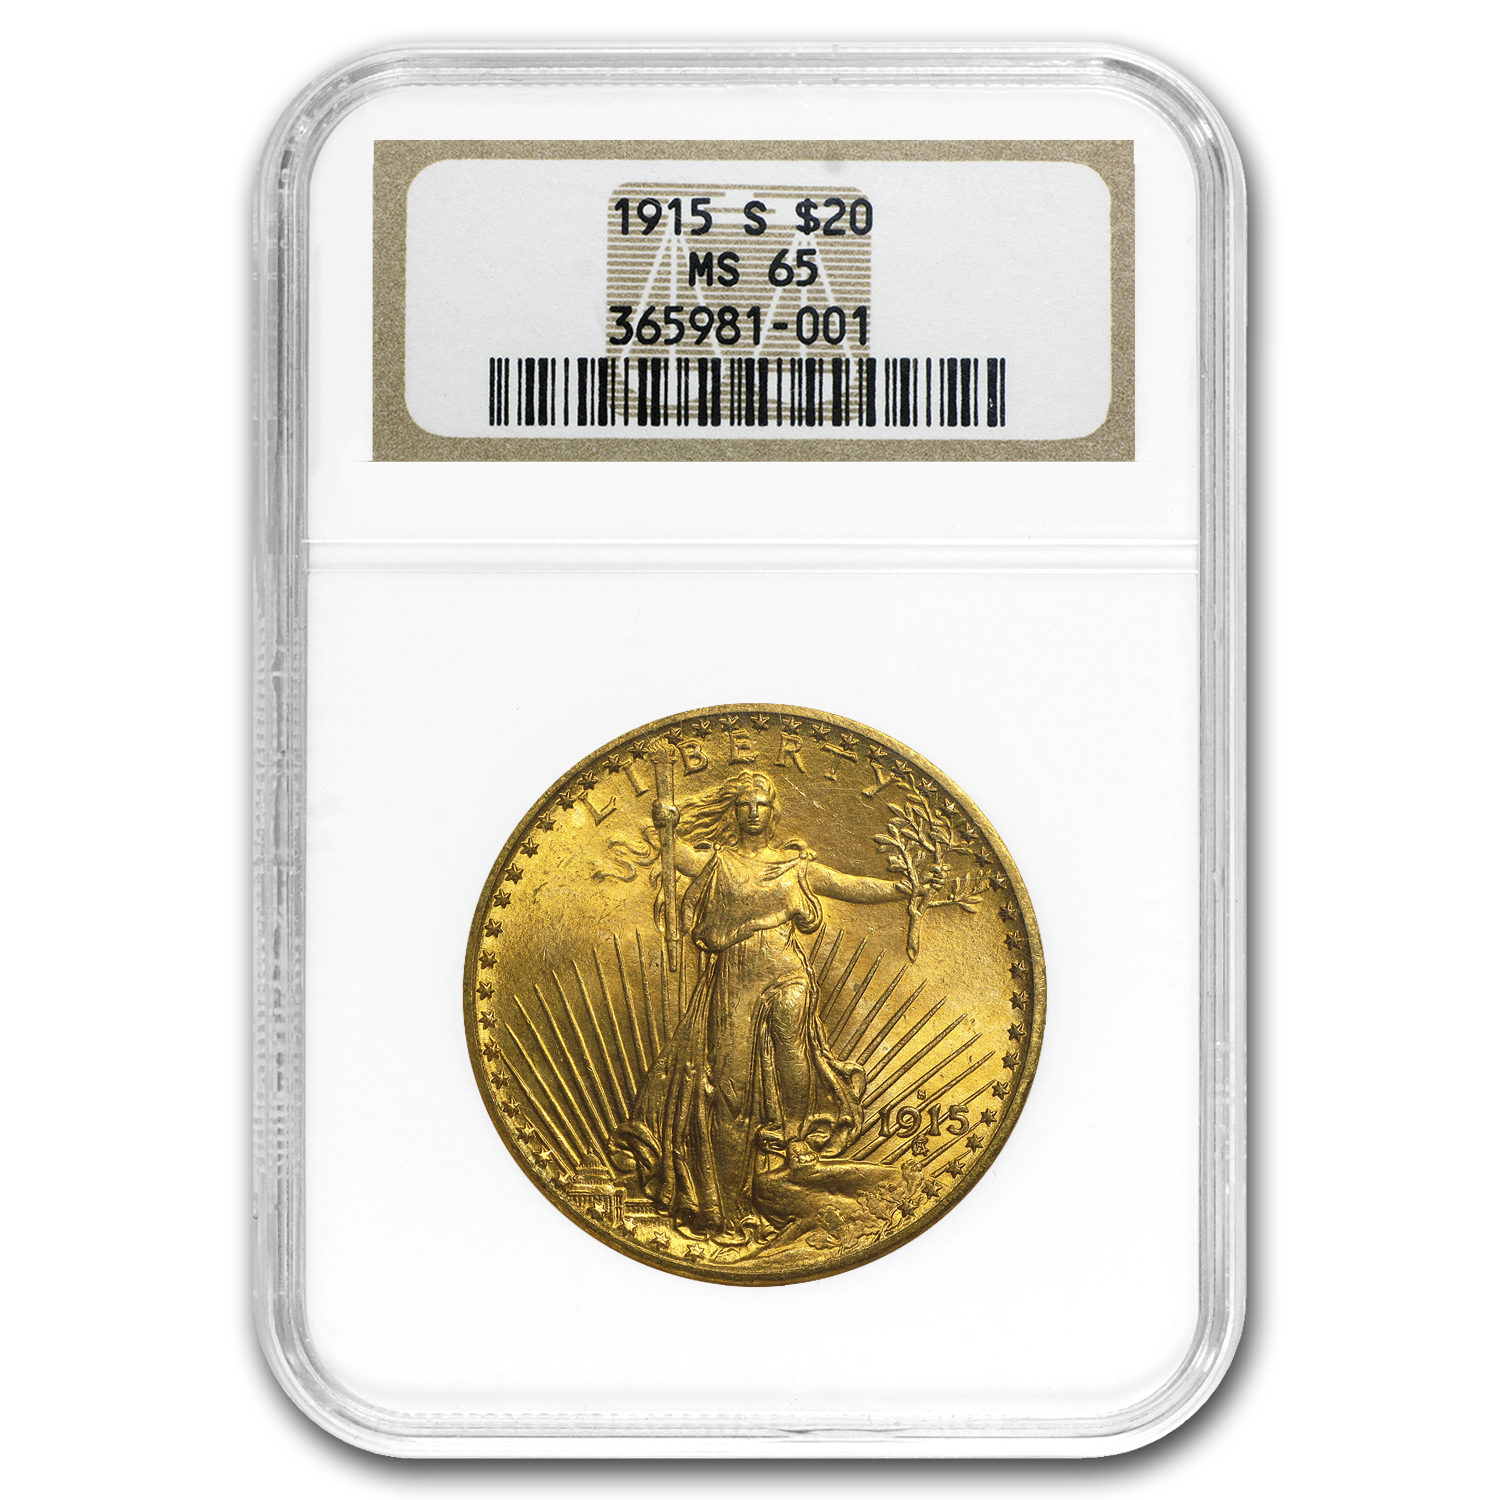 1915-S $20 St. Gaudens Gold Double Eagle MS-65 NGC